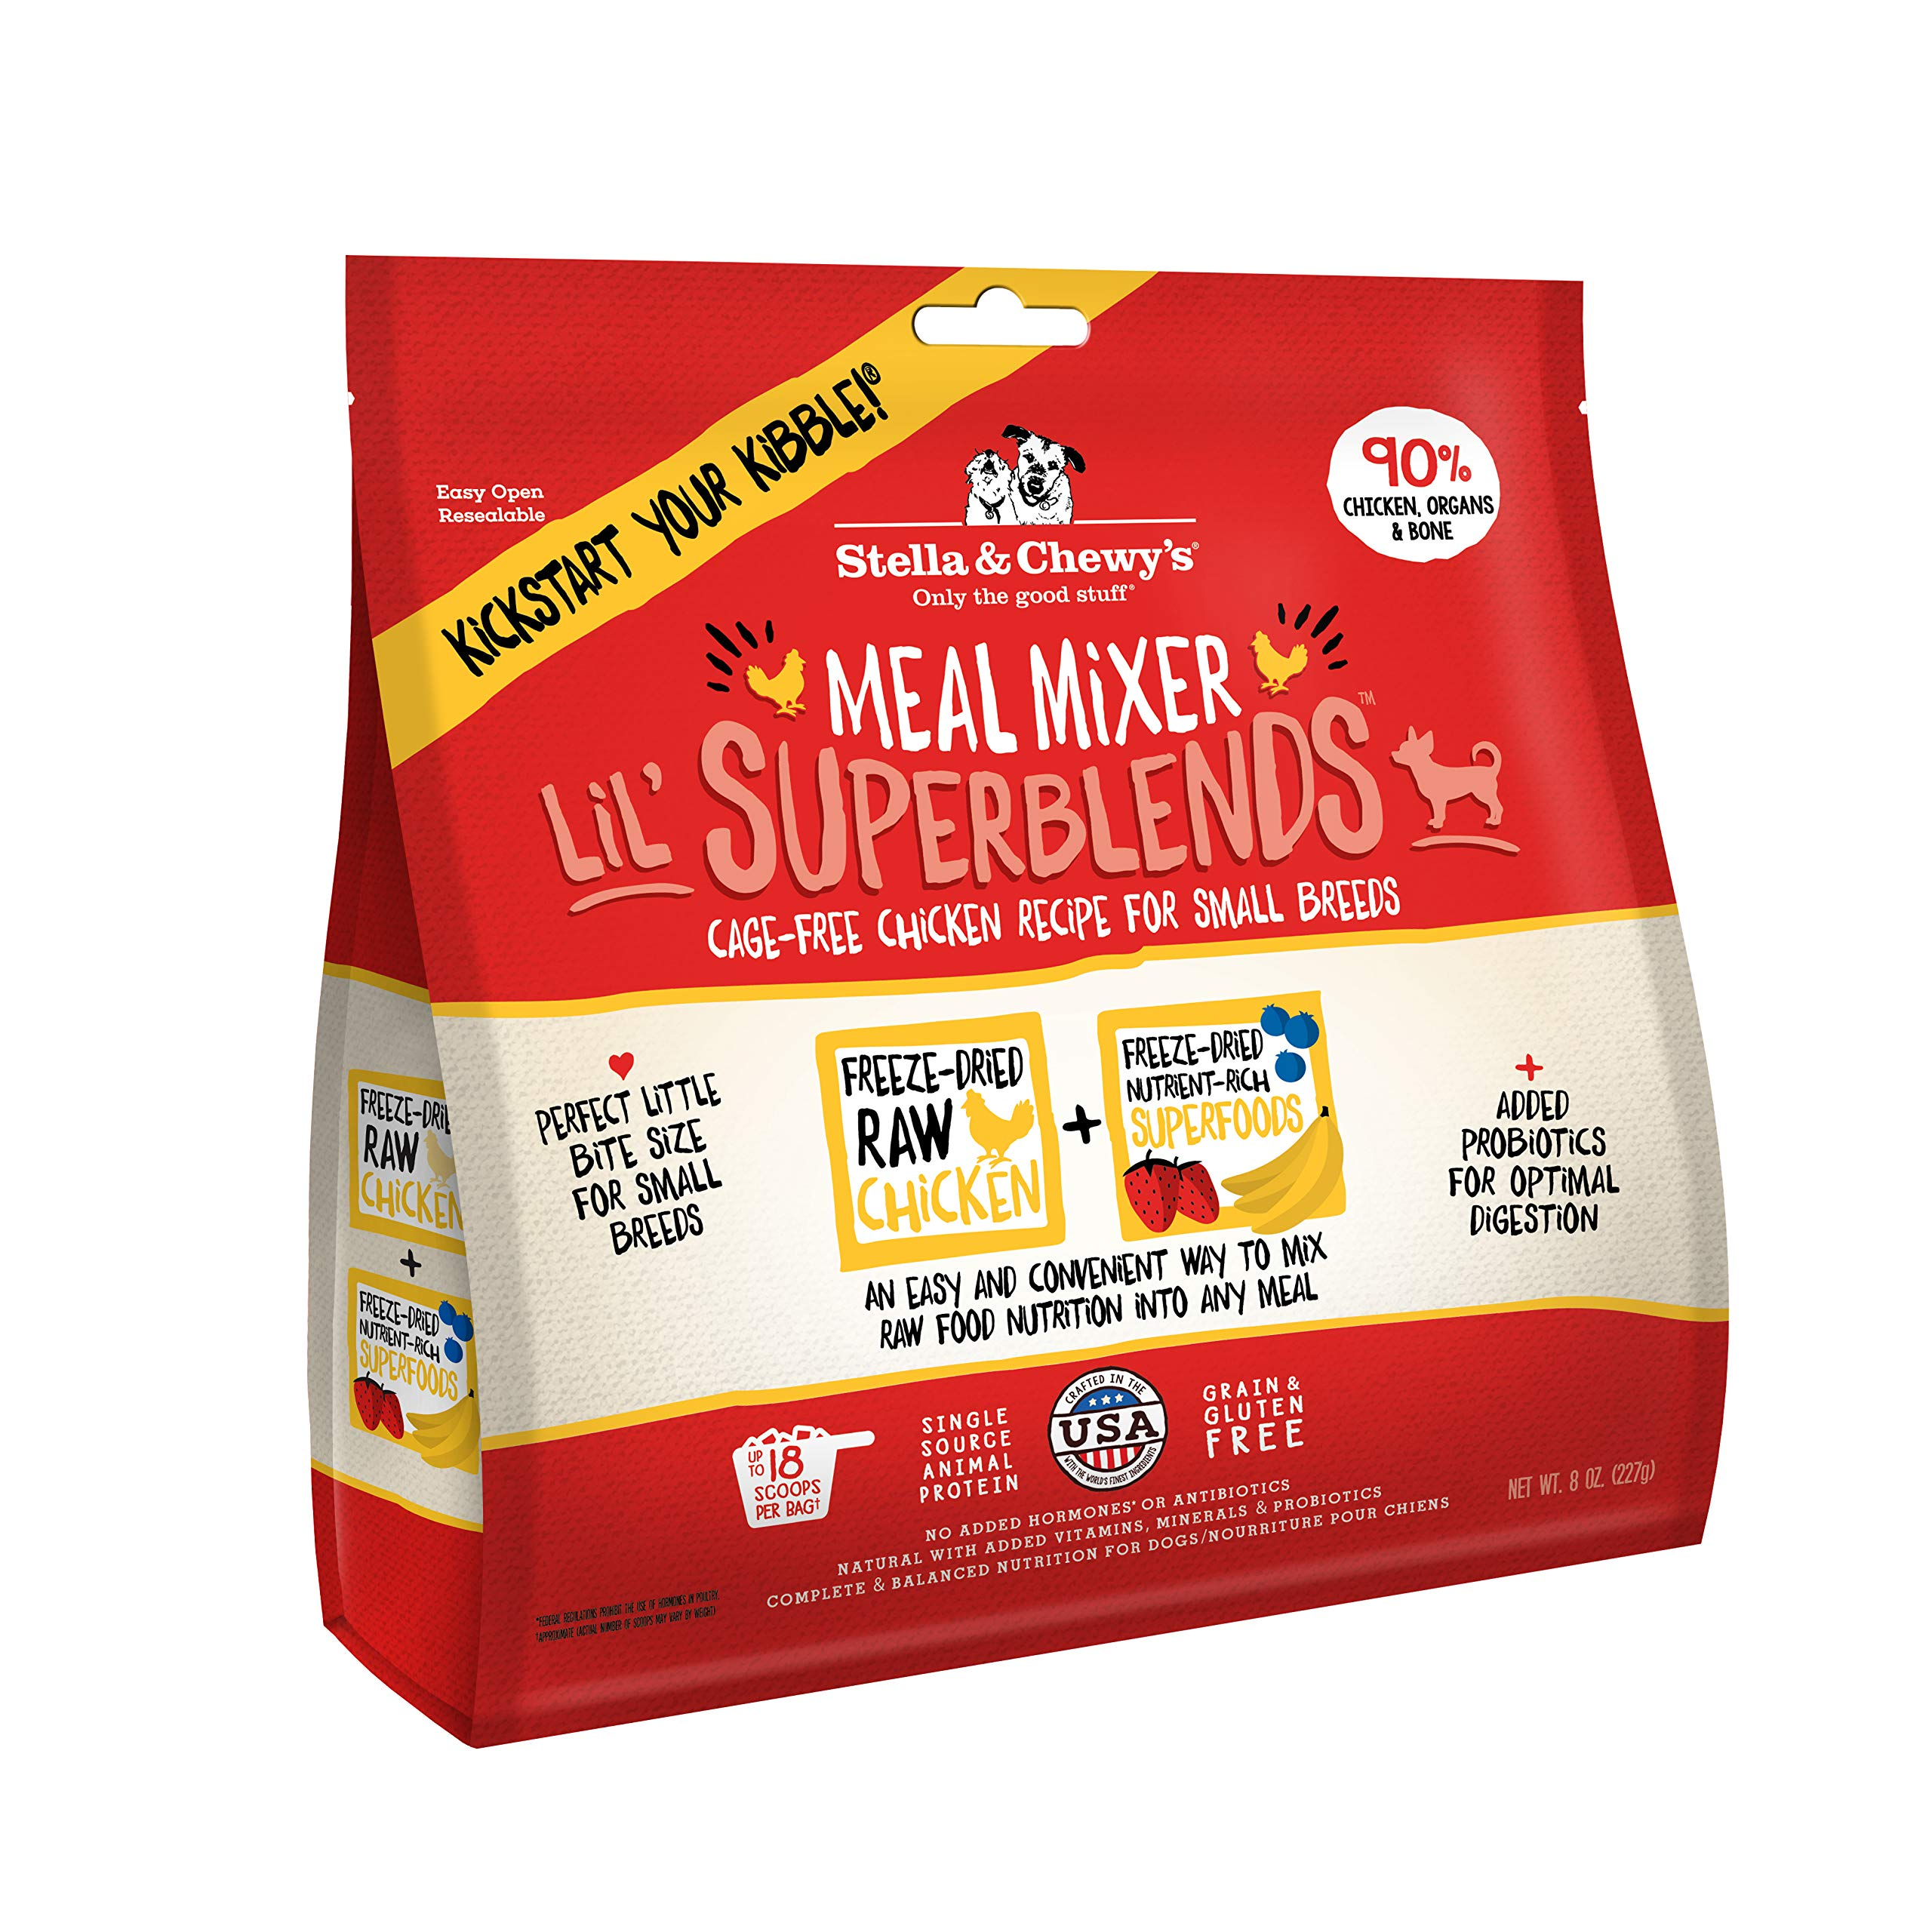 Stella & Chewy's Freeze-Dried Raw Cage-Free Chicken Meal Mixer Lil' SuperBlends Grain-Free Dog Food Topper, 8 oz. bag by Stella & Chewy's